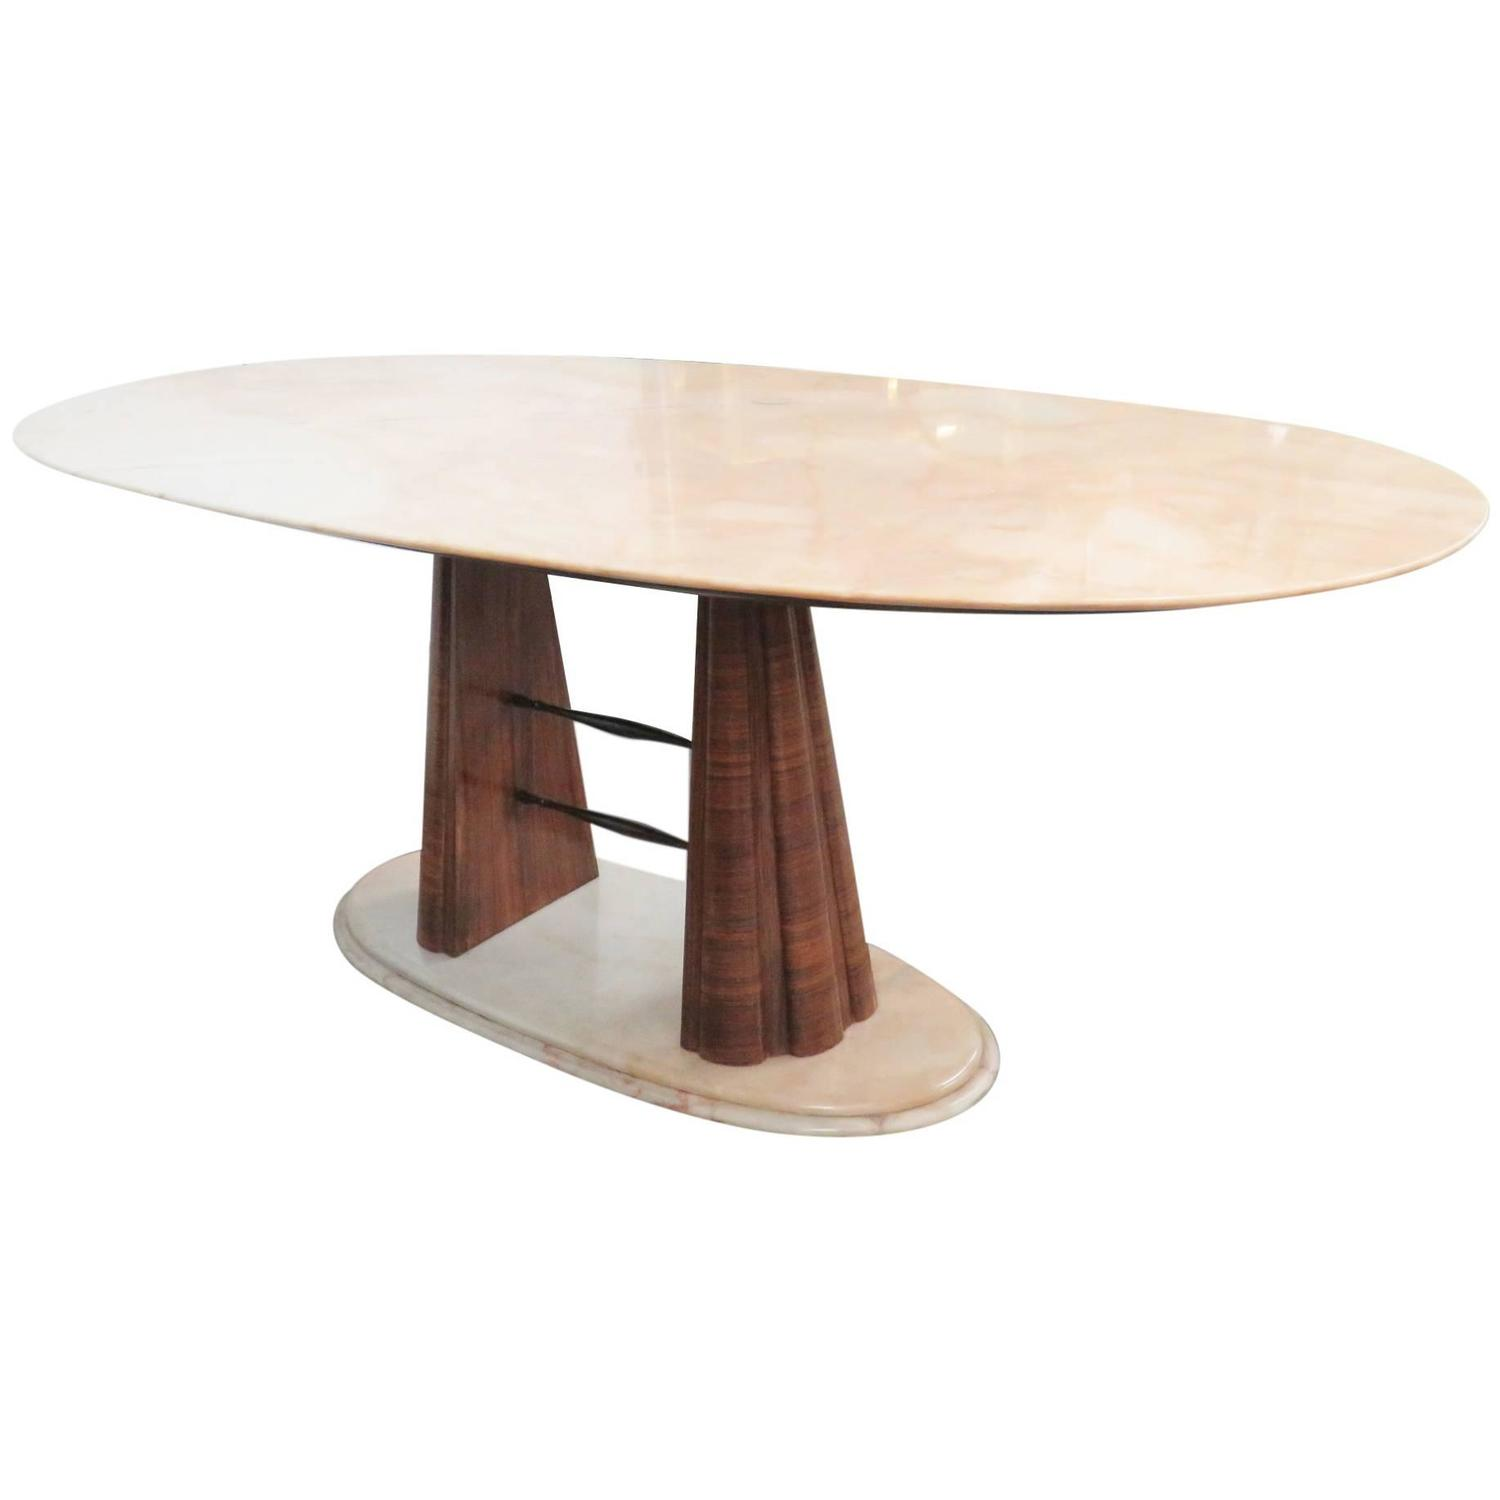 Borsani style modern marble top dining table for sale at for New style dining table